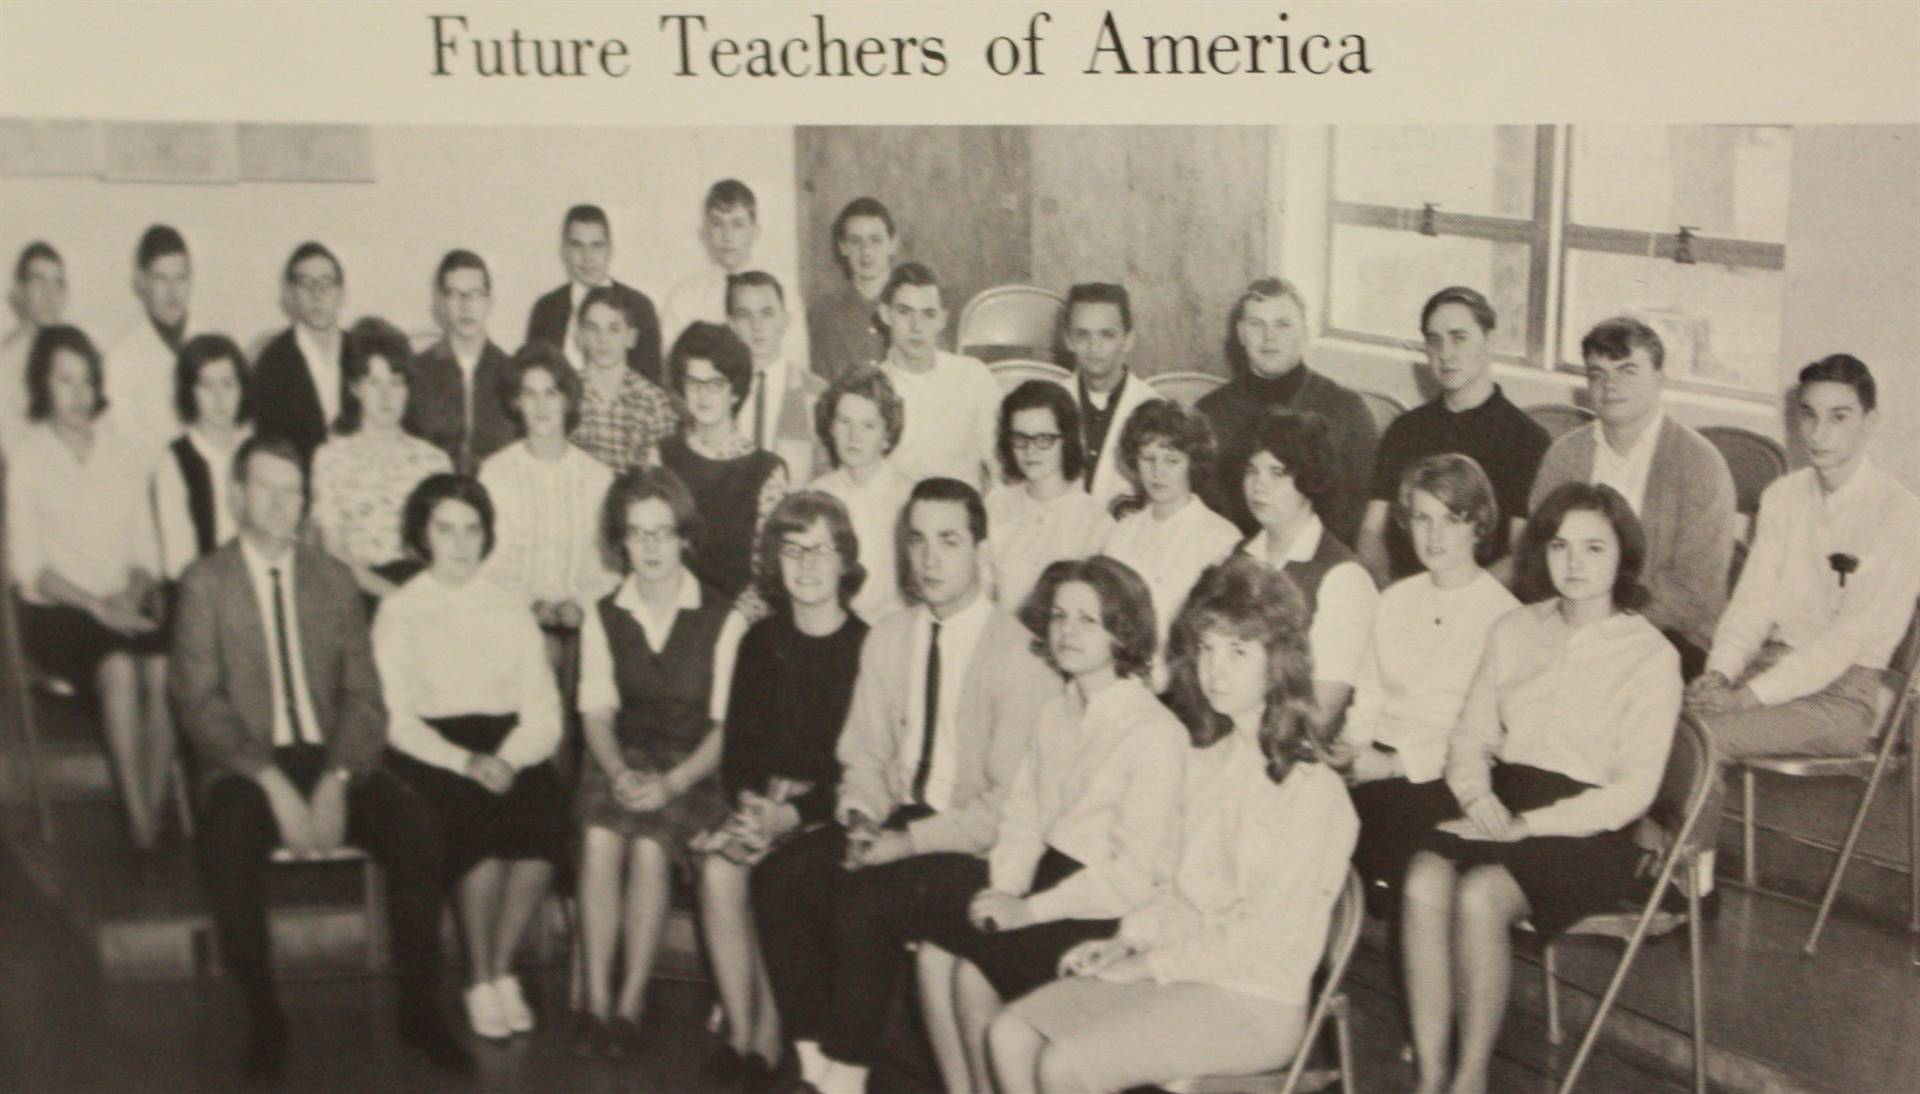 1966 Future Teachers of America